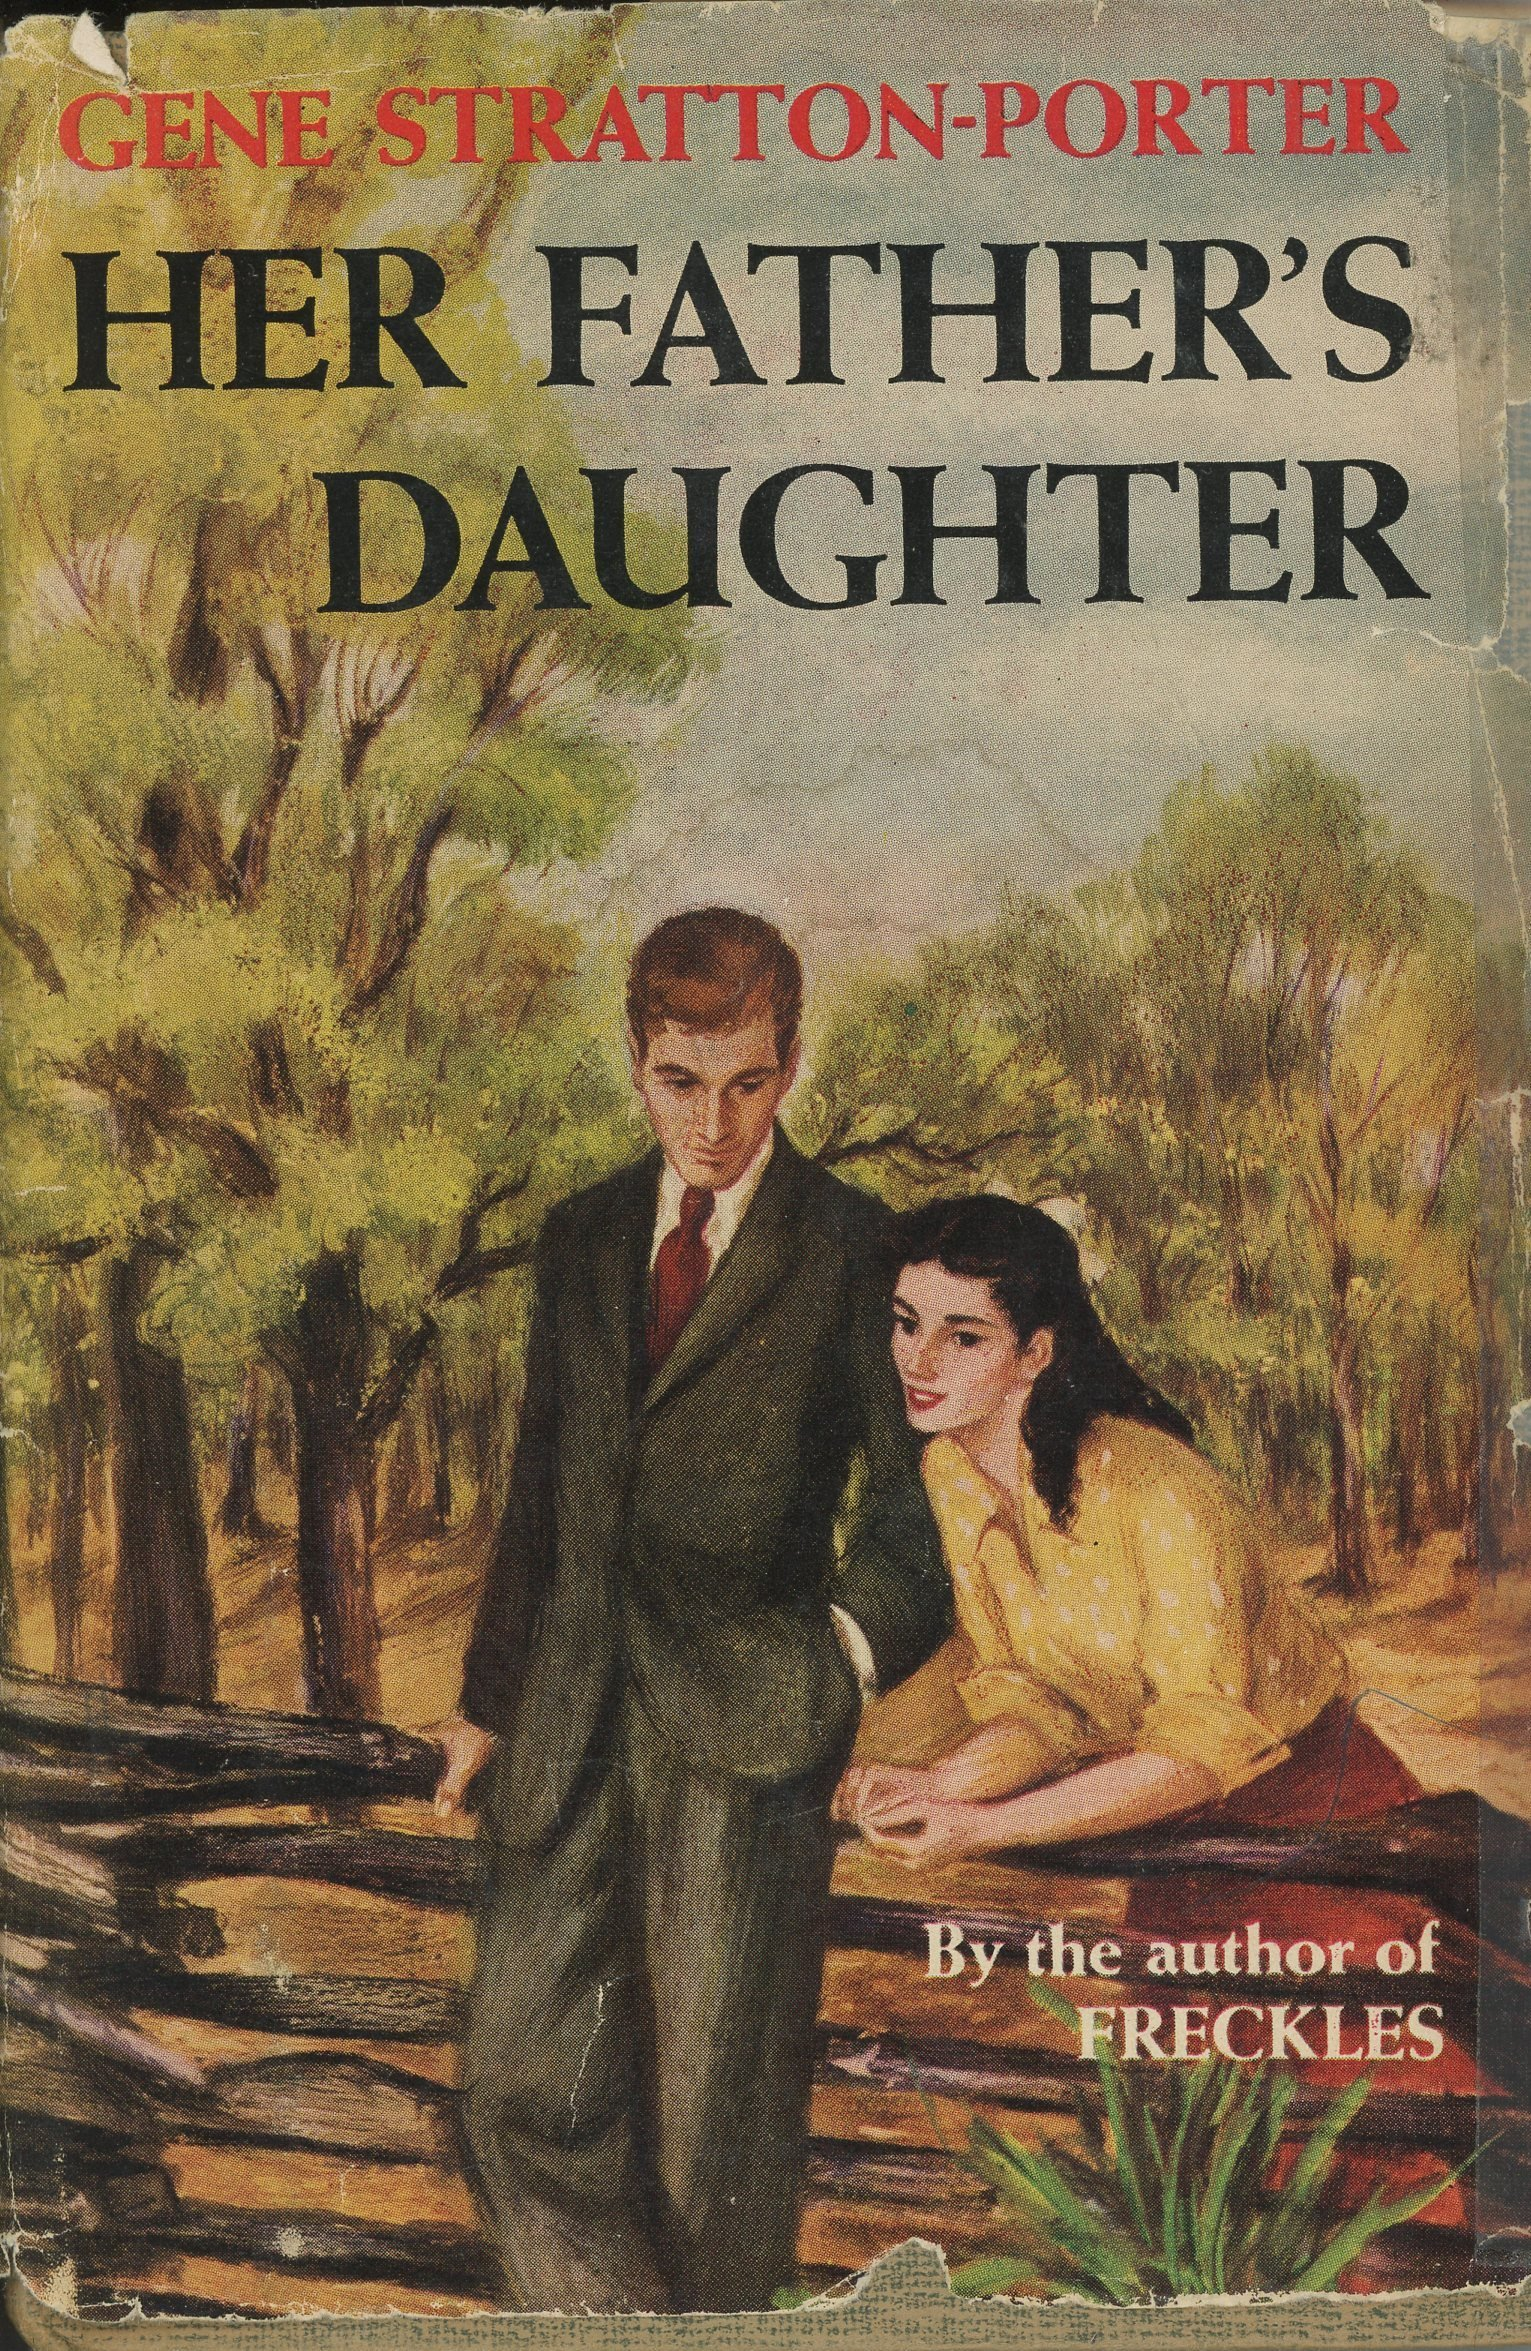 Her Father's Daughter: Stratton-Porter, Gene: Amazon.com: Books